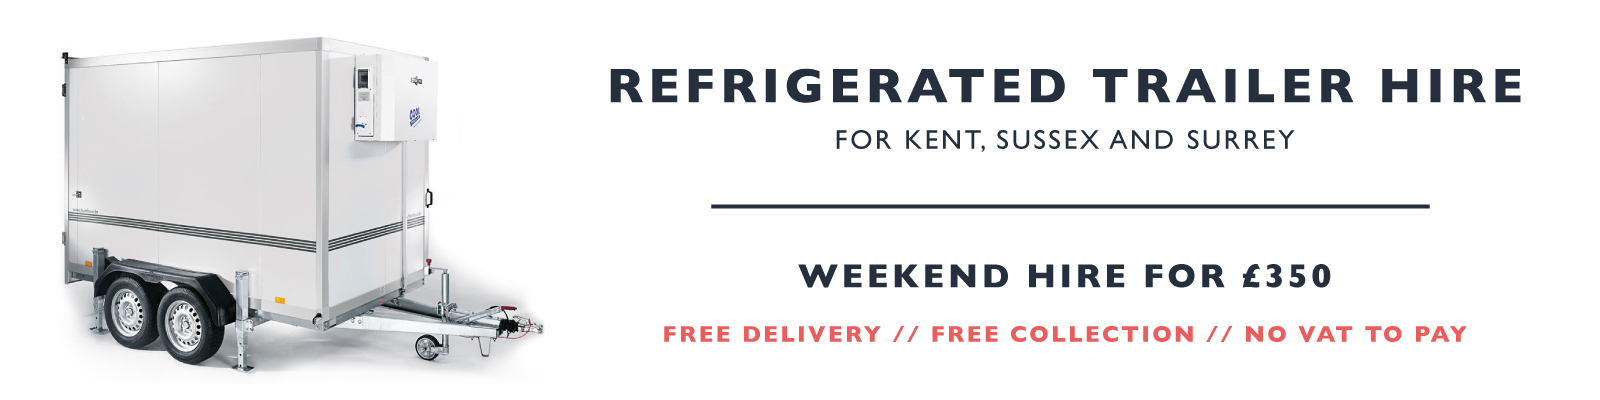 Refrigerated-Trailer-Hire-Kent-Sussex-Surrey-(1600)